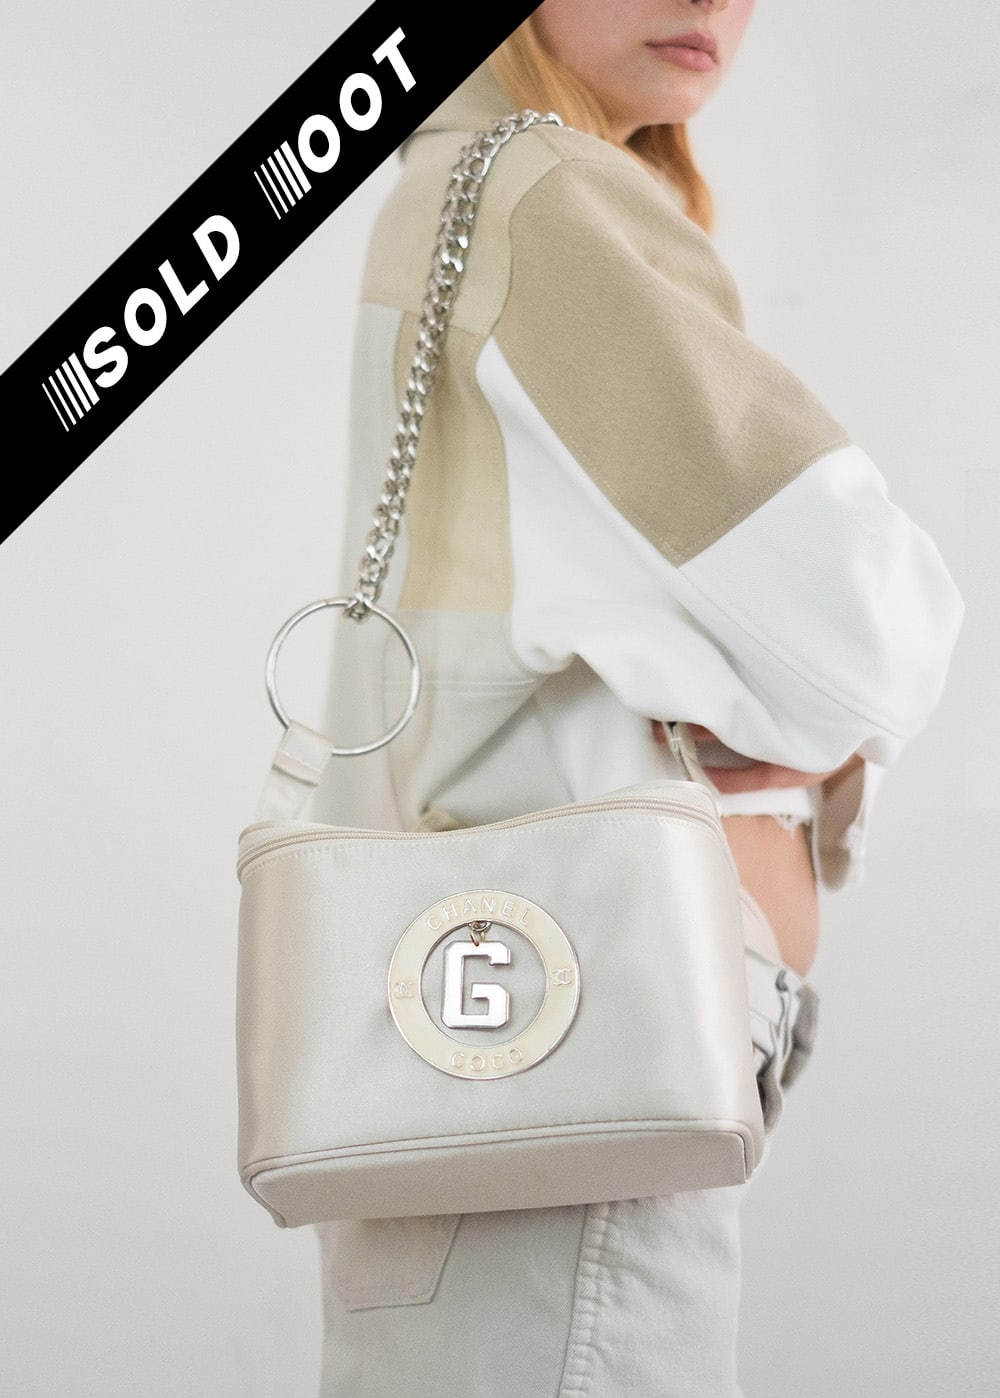 Fake Chanel G Bag 248